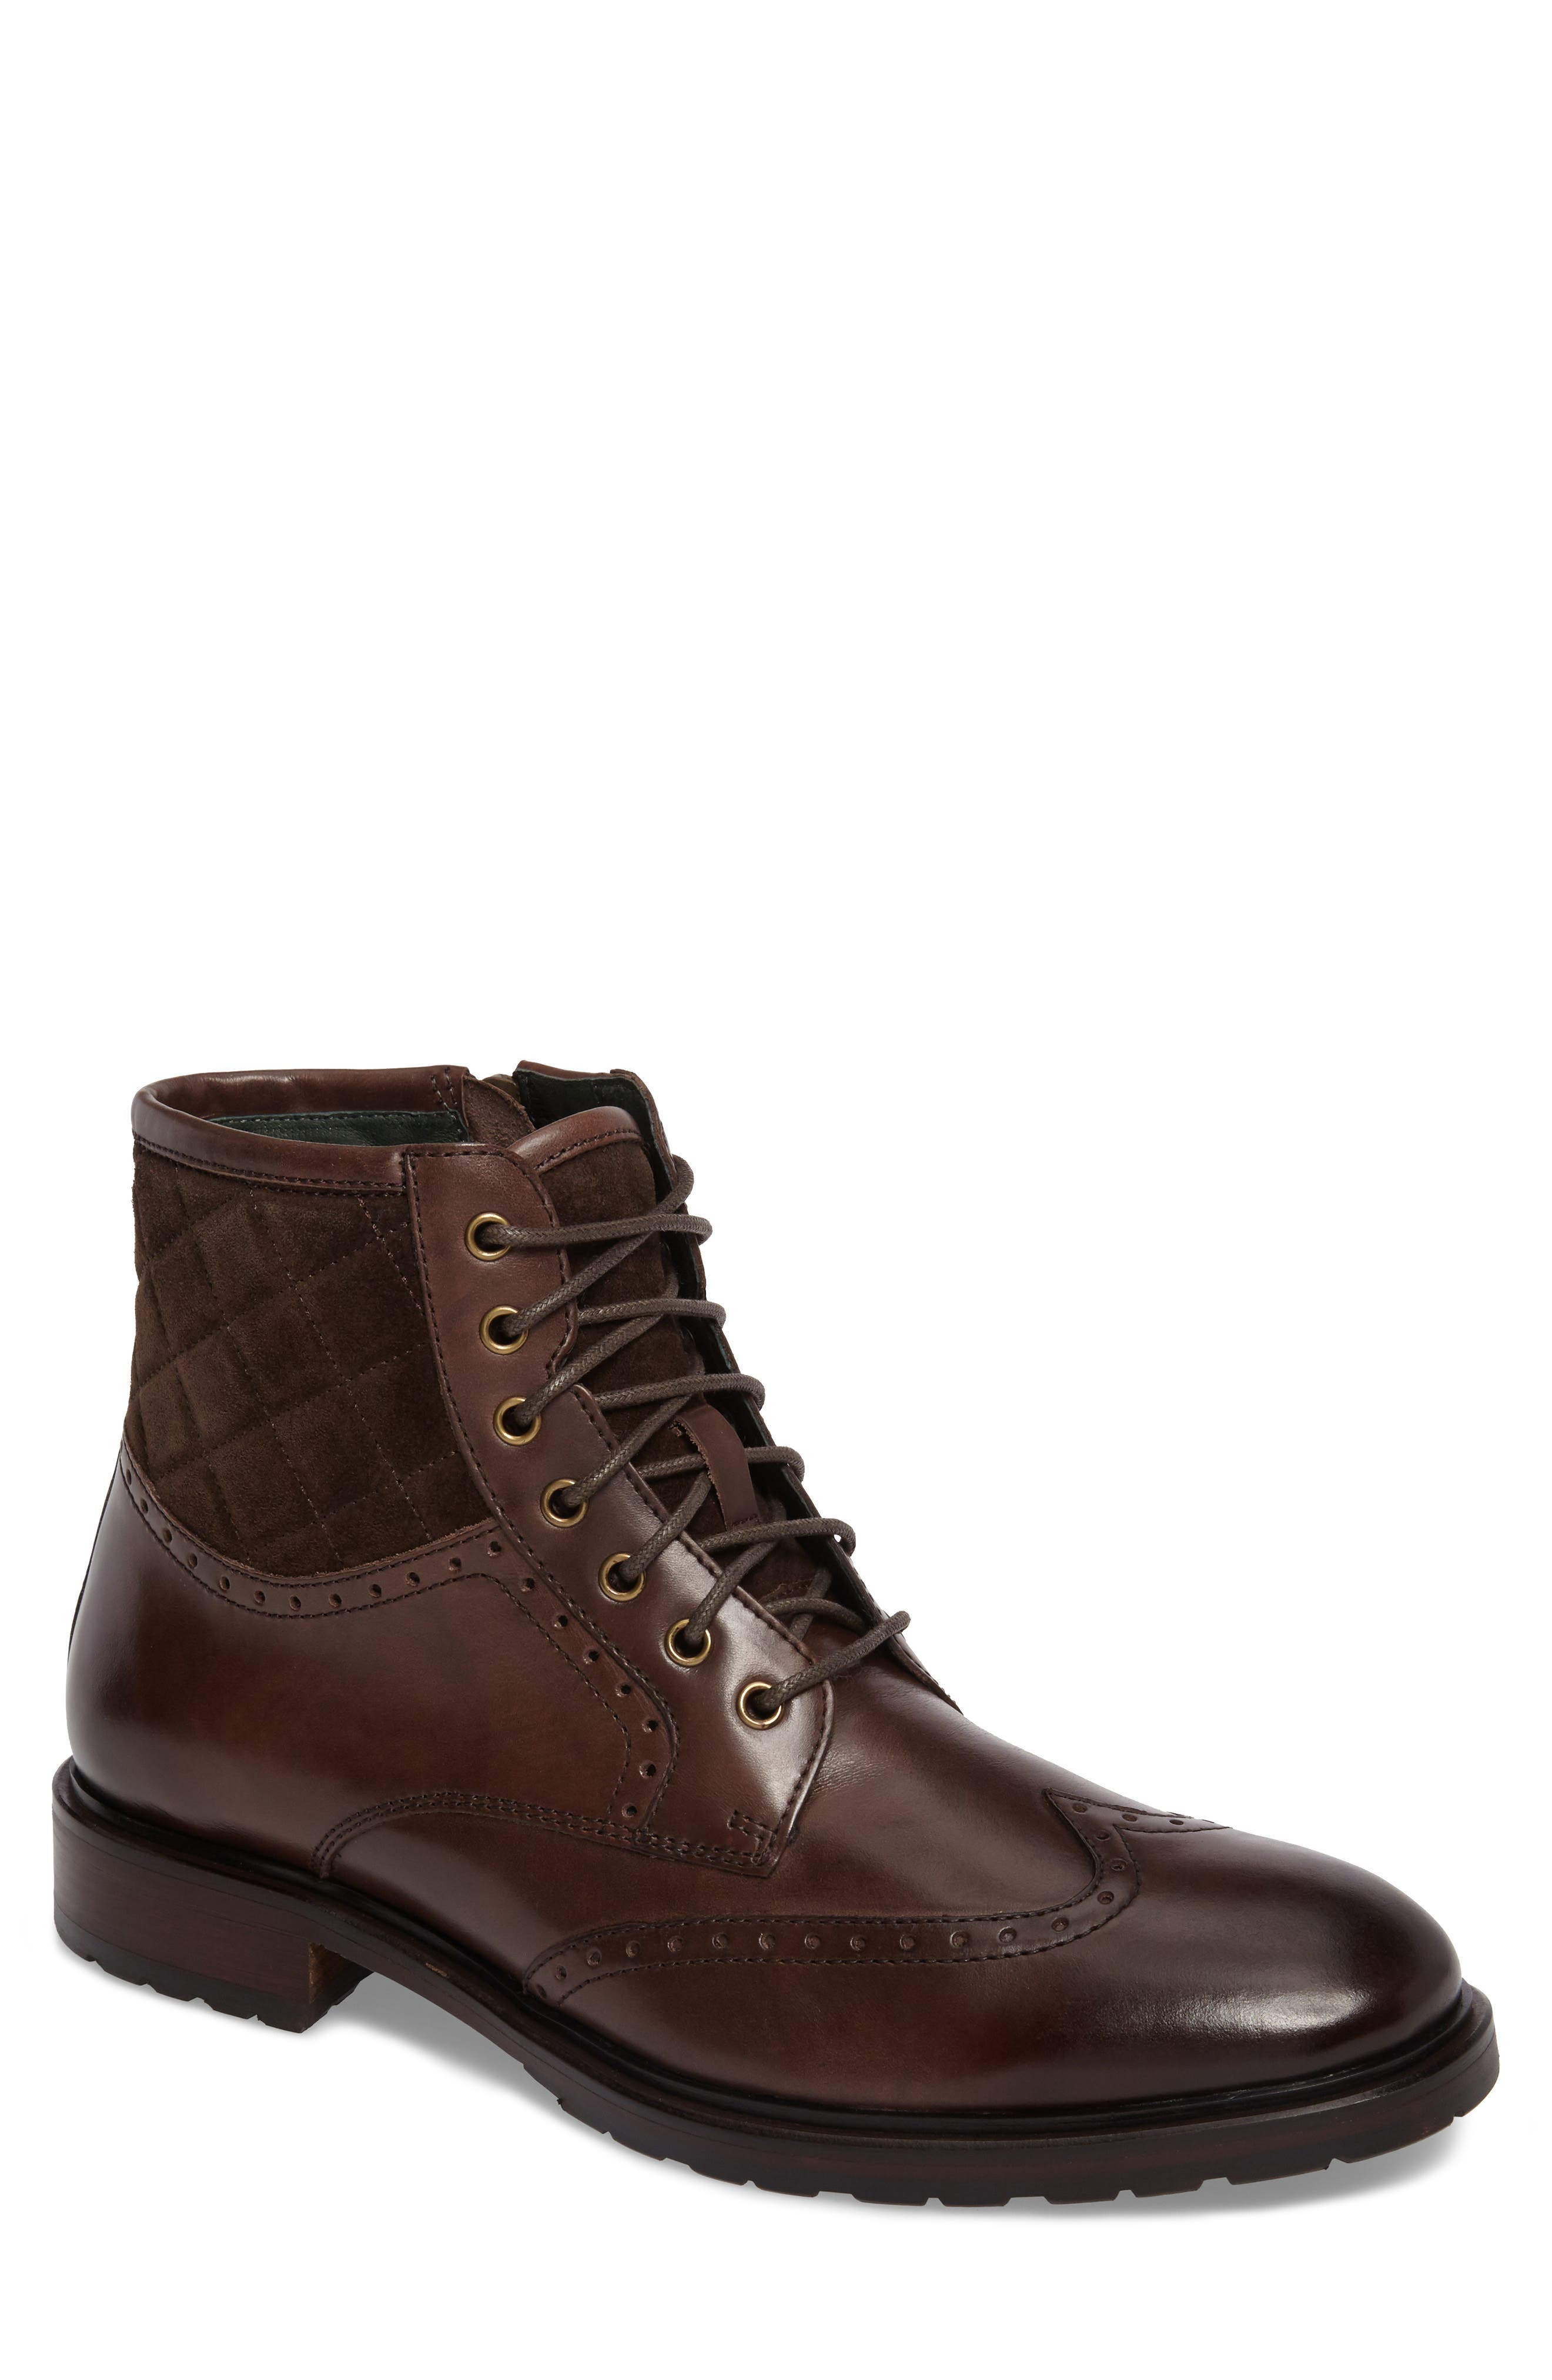 Myles Wingtip Boot,                         Main,                         color, Mahogany Leather